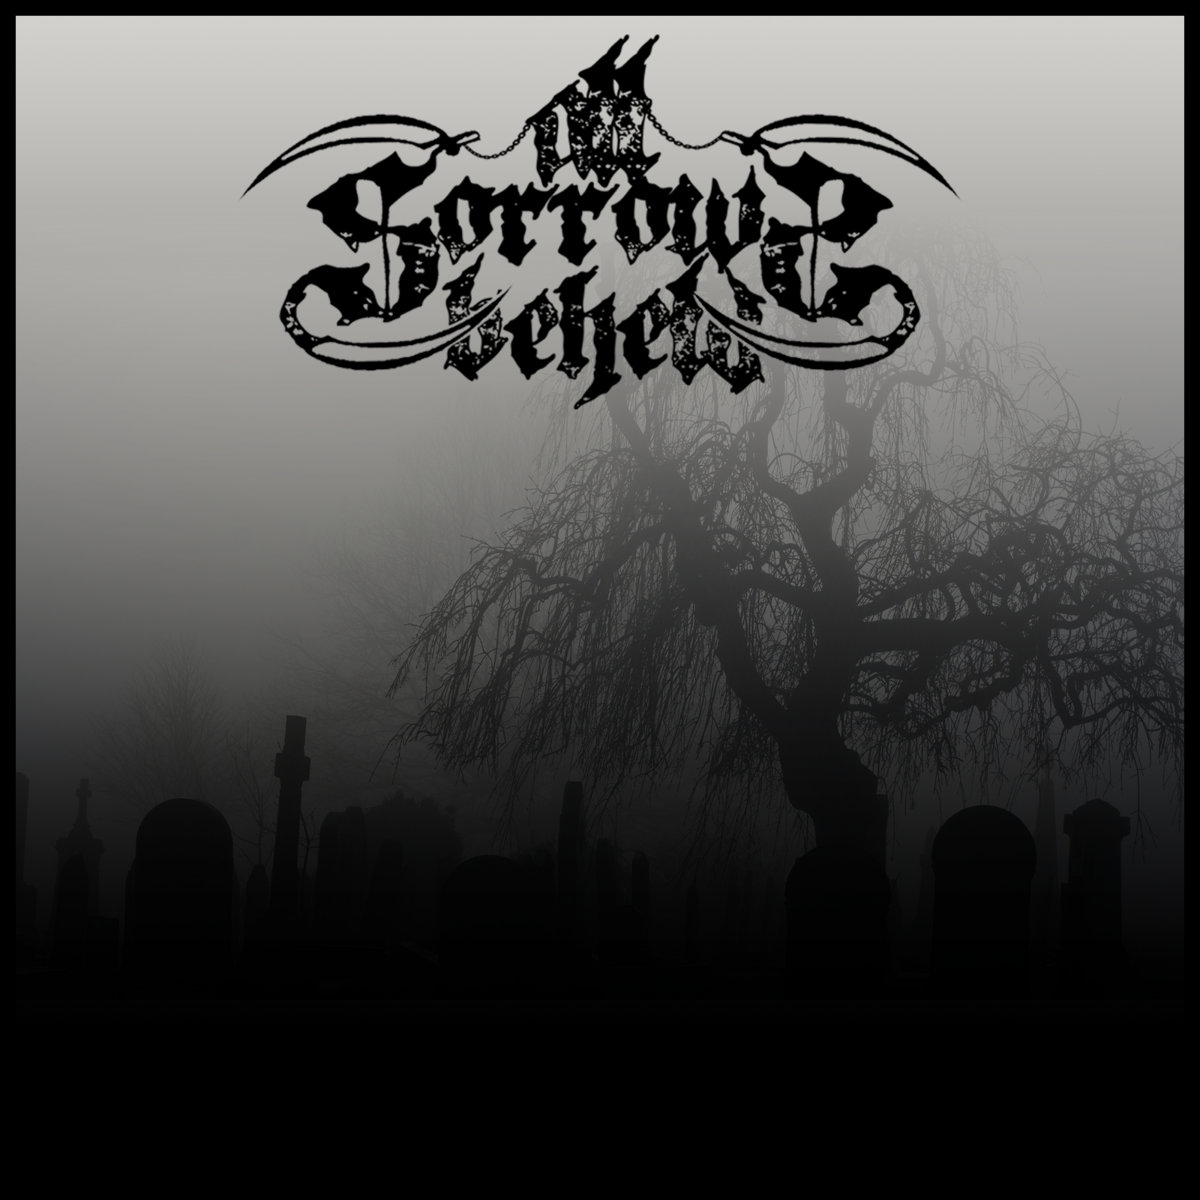 https://allsorrowsbeheld.bandcamp.com/album/all-sorrows-beheld-2